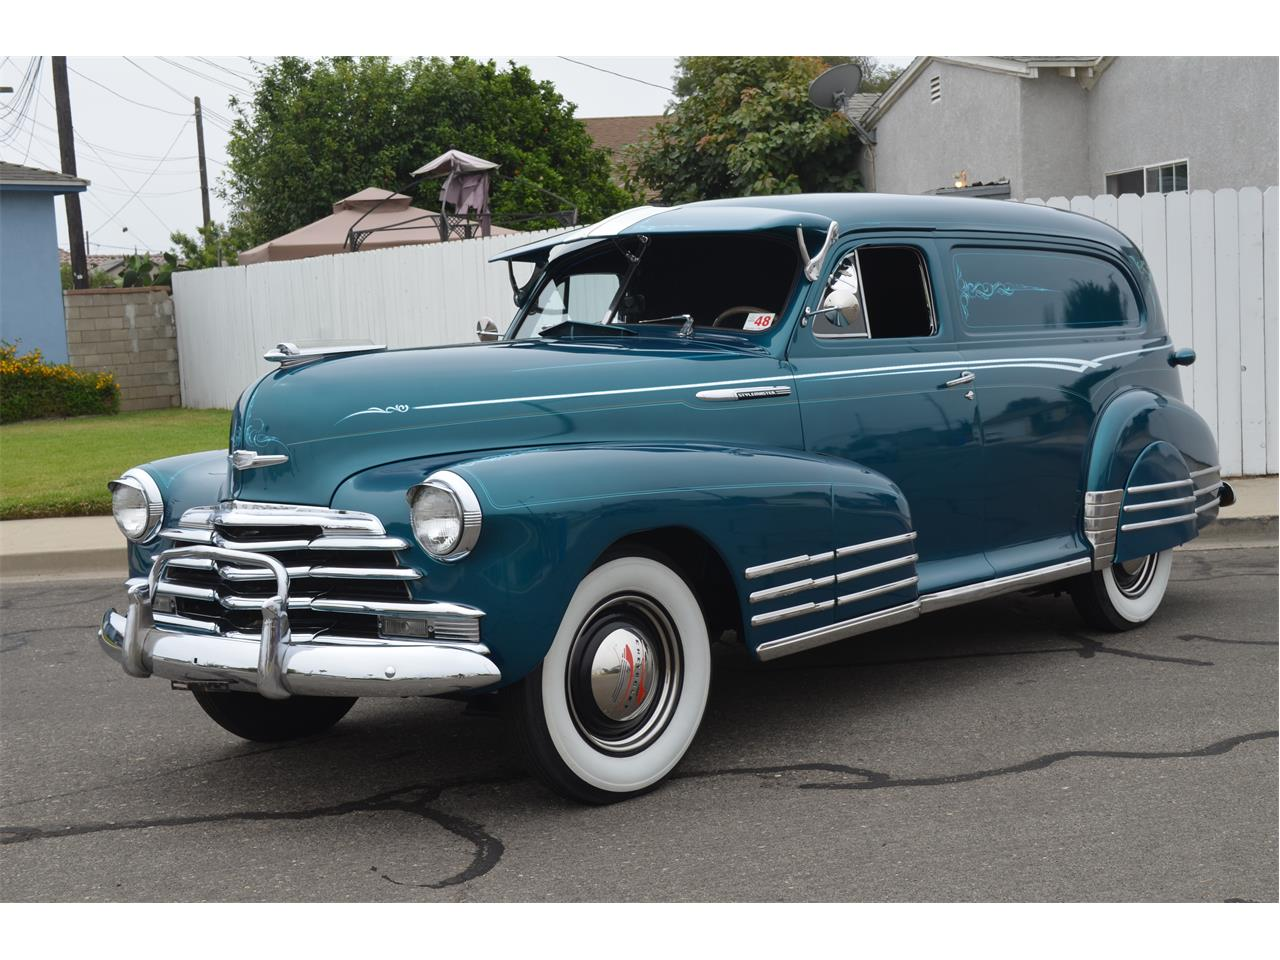 Sold 1948 Chevrolet Sedan Delivery For Sale Passing - Www